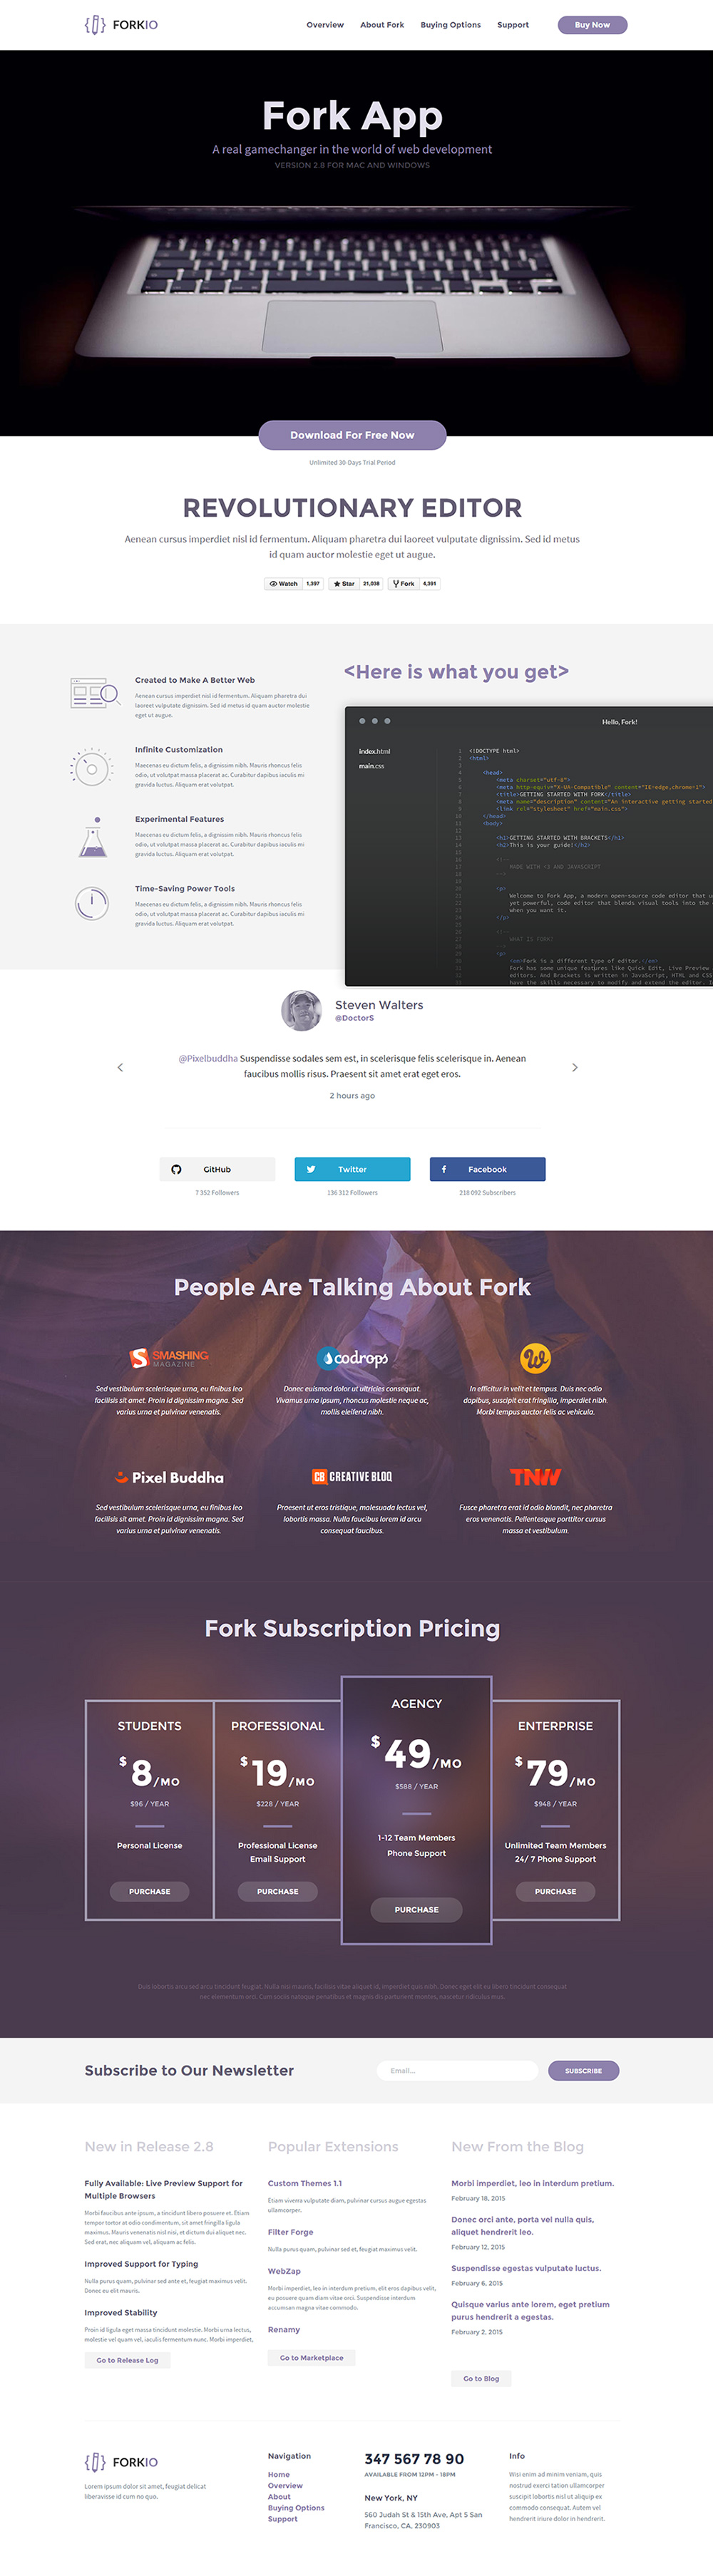 http://www.graphicsfuel.com/wp-content/uploads/2015/03/free-one-page-website-template-full.jpg